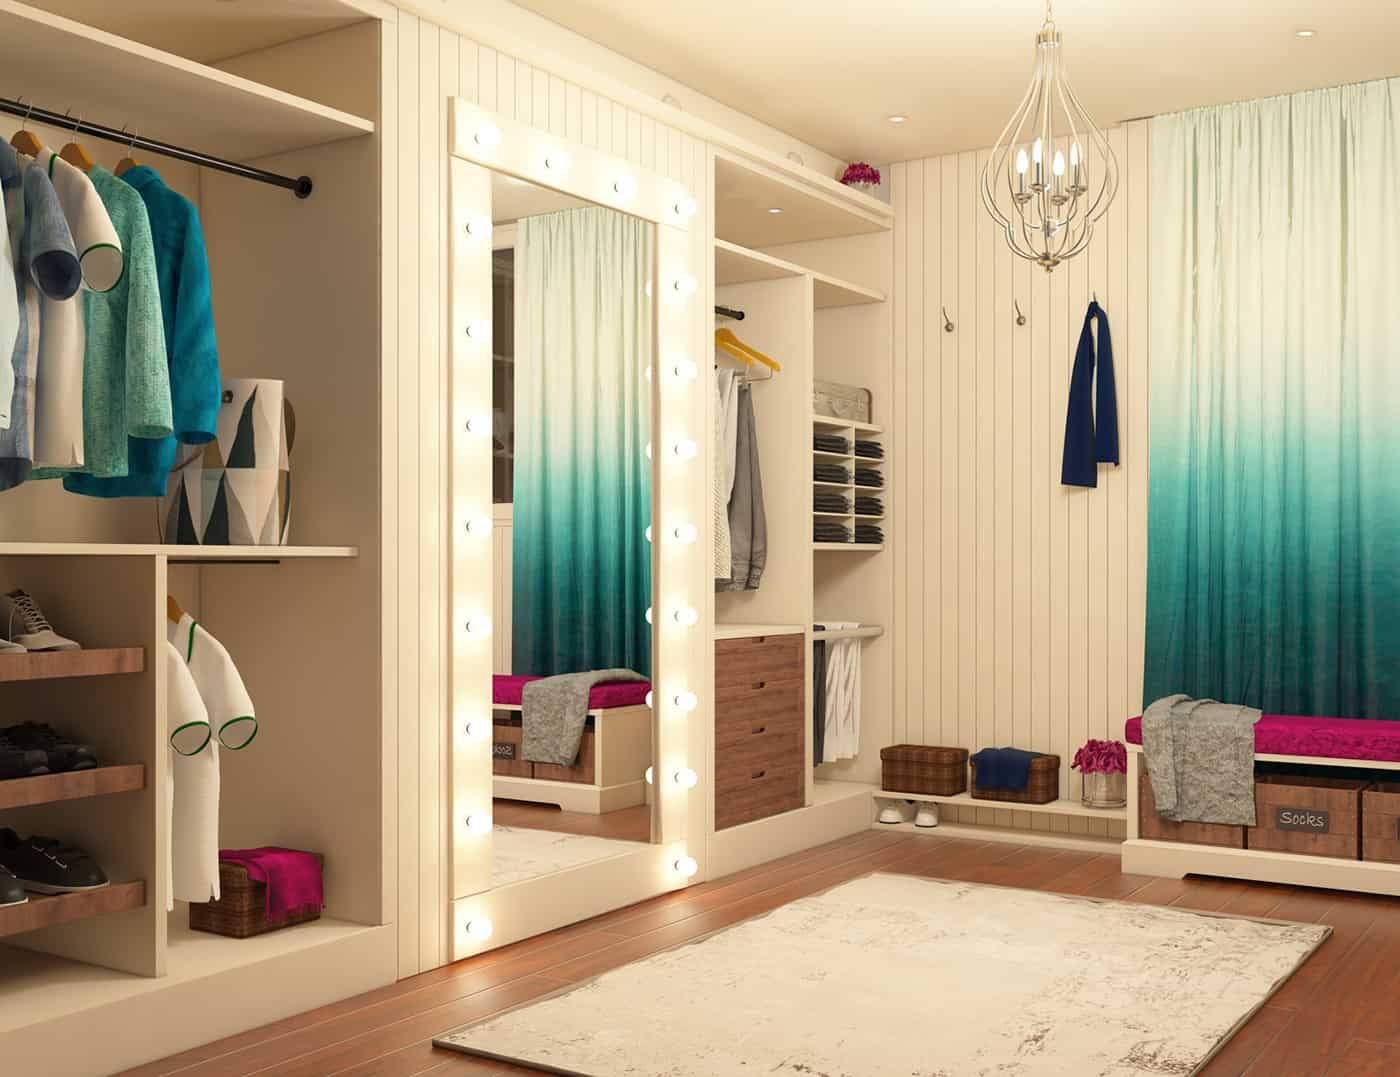 Dressing room interior designio for Master bedroom dressing room ideas